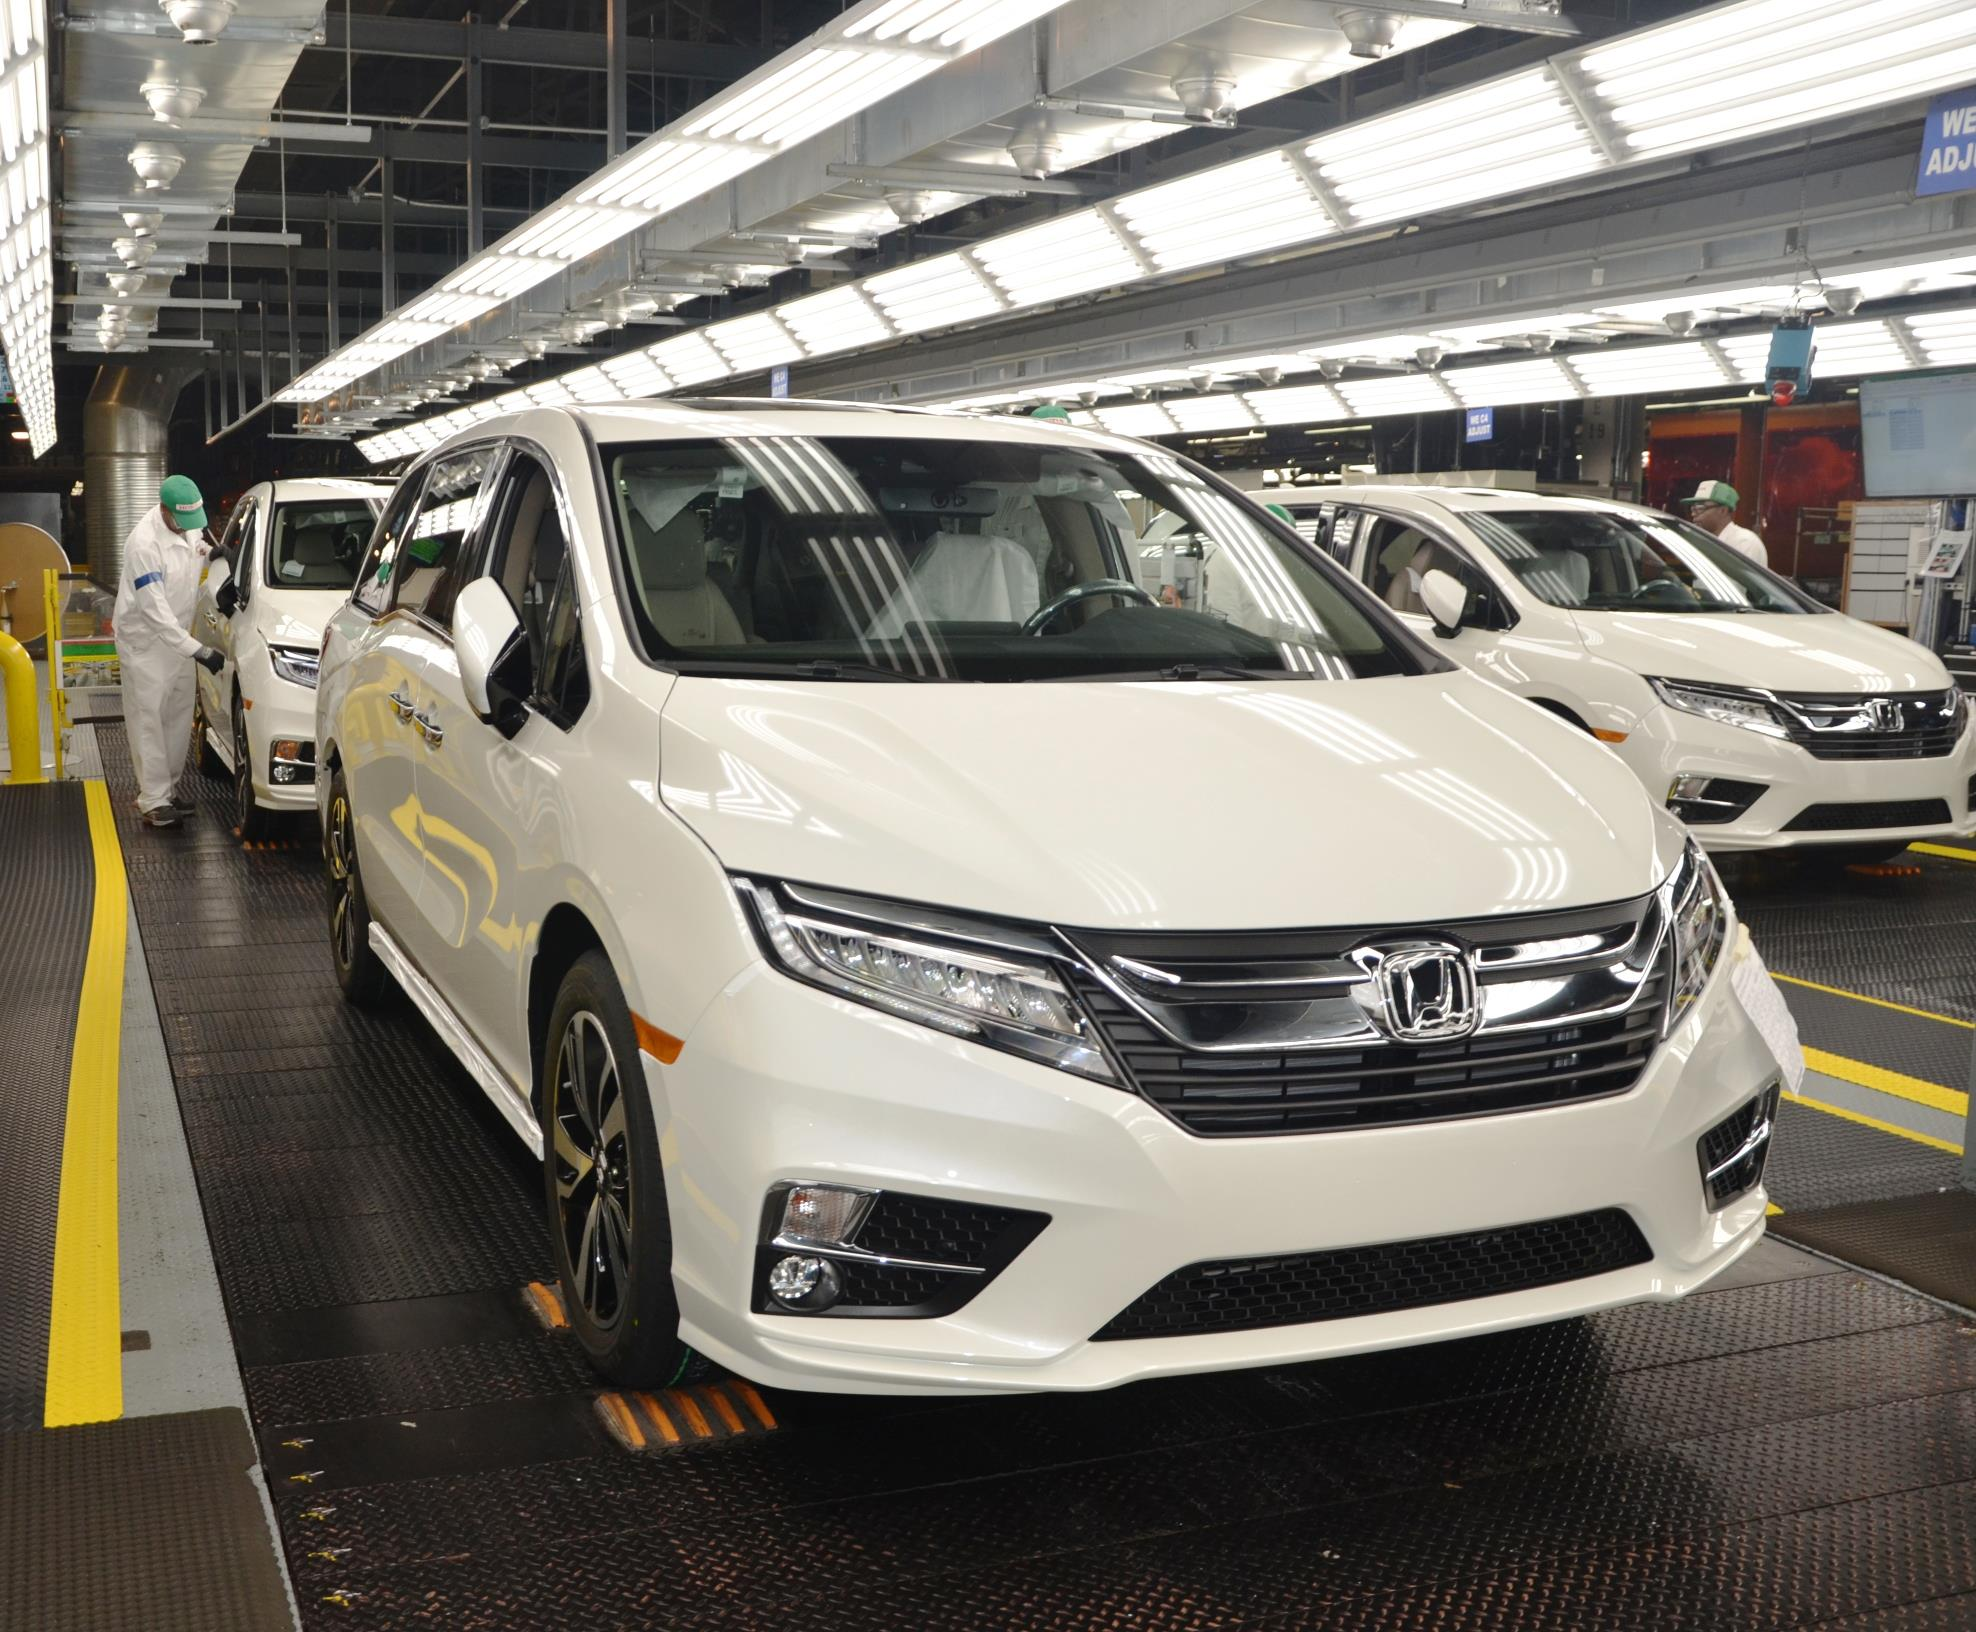 Superb More Than 1,500 Associates At Honda Manufacturing Of Alabama (HMA) Today  Celebrated The Start Of Mass Production Of The All New 2018 Honda Odyssey  Minivan, ...